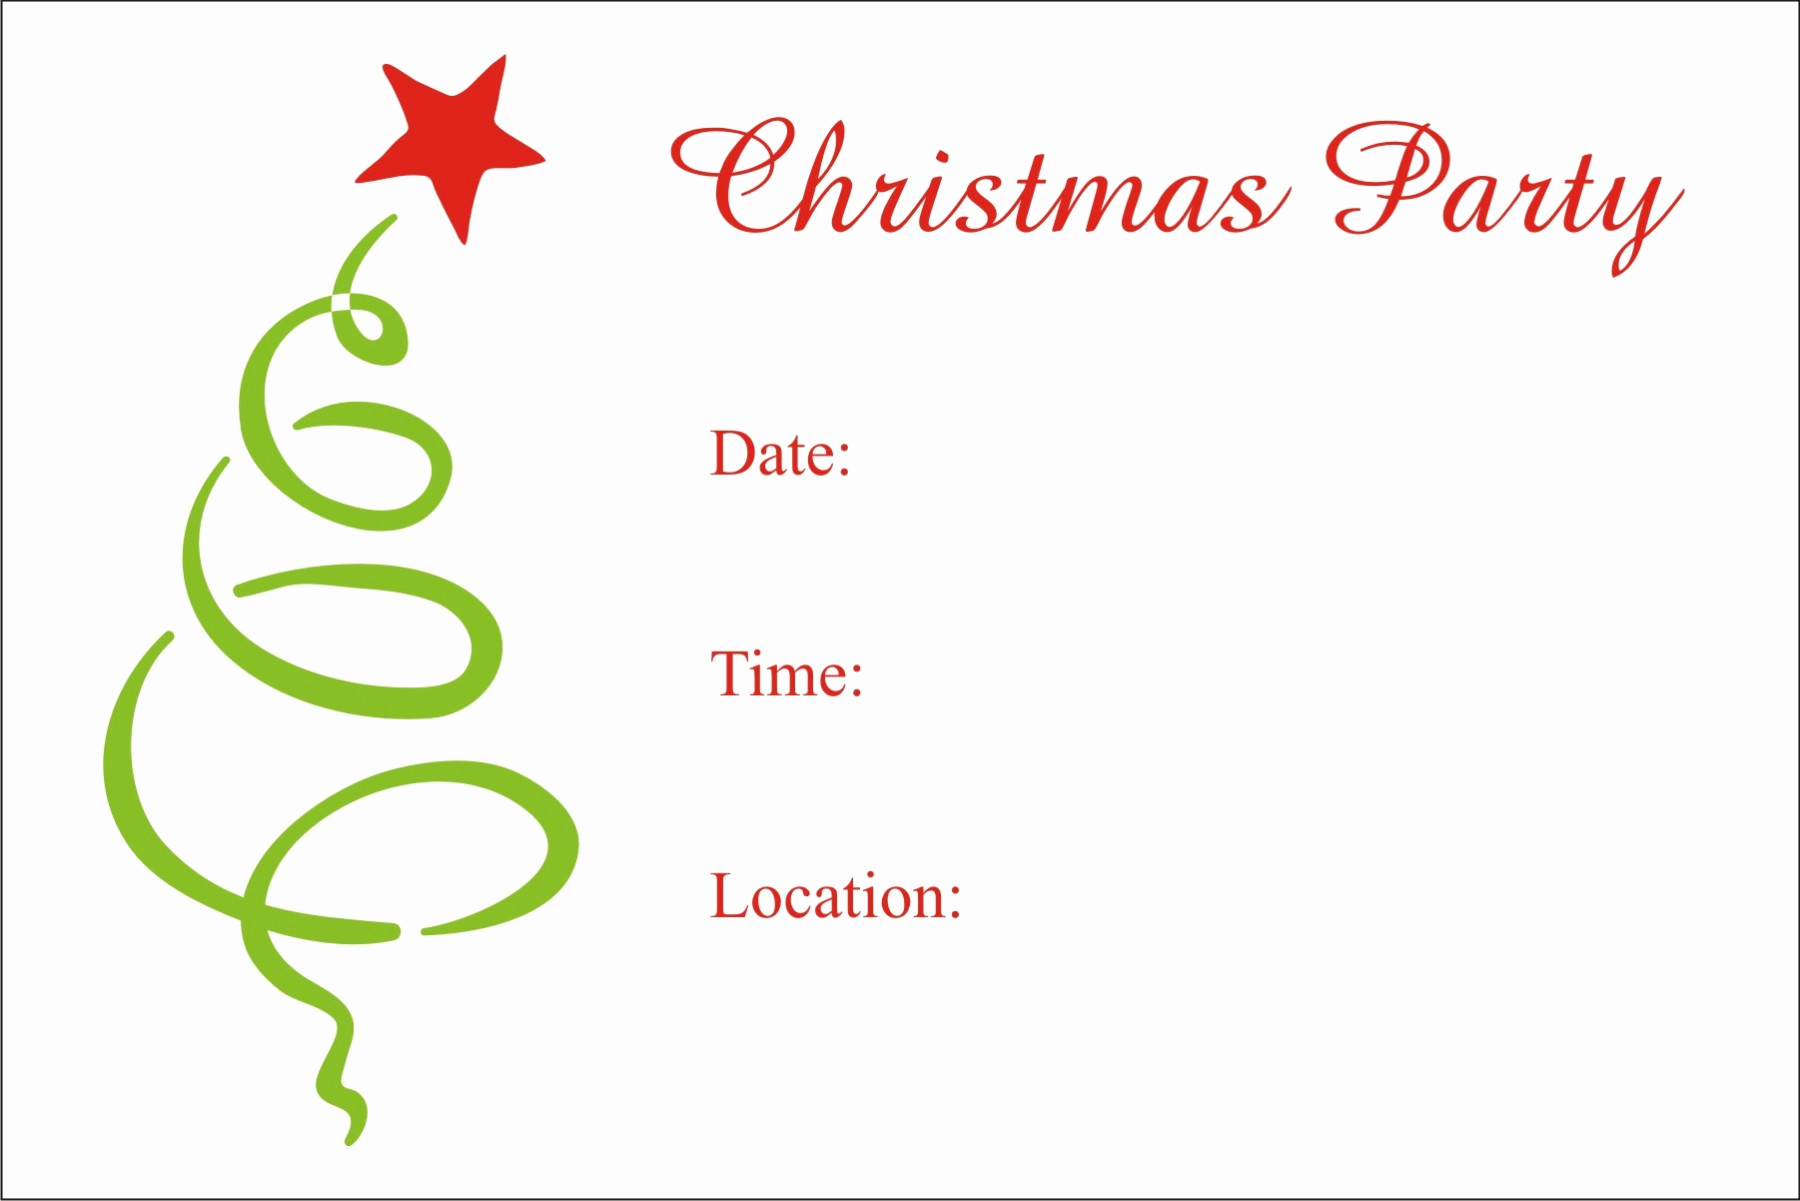 Holiday Party Invitation Template Best Of Christmas Party Free Printable Holiday Invitation